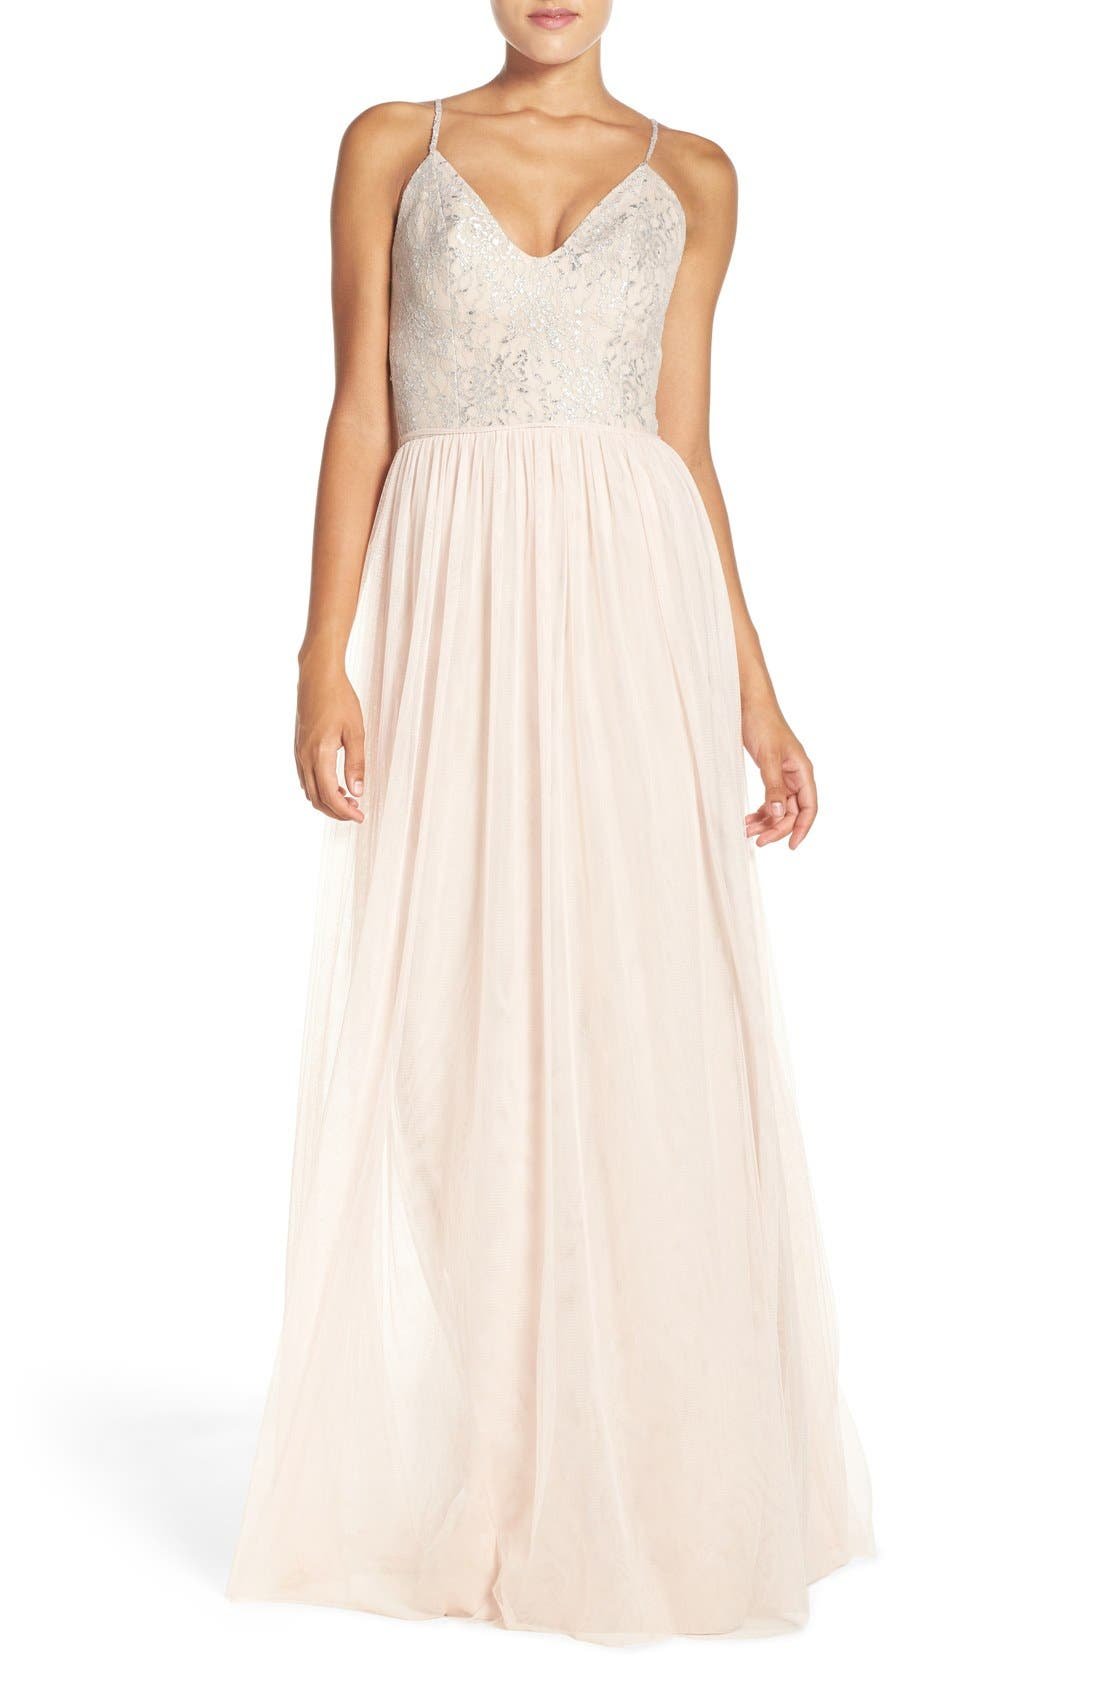 Main Image - Hayley Paige Occasions Metallic Lace & Tulle Spaghetti Strap Gown